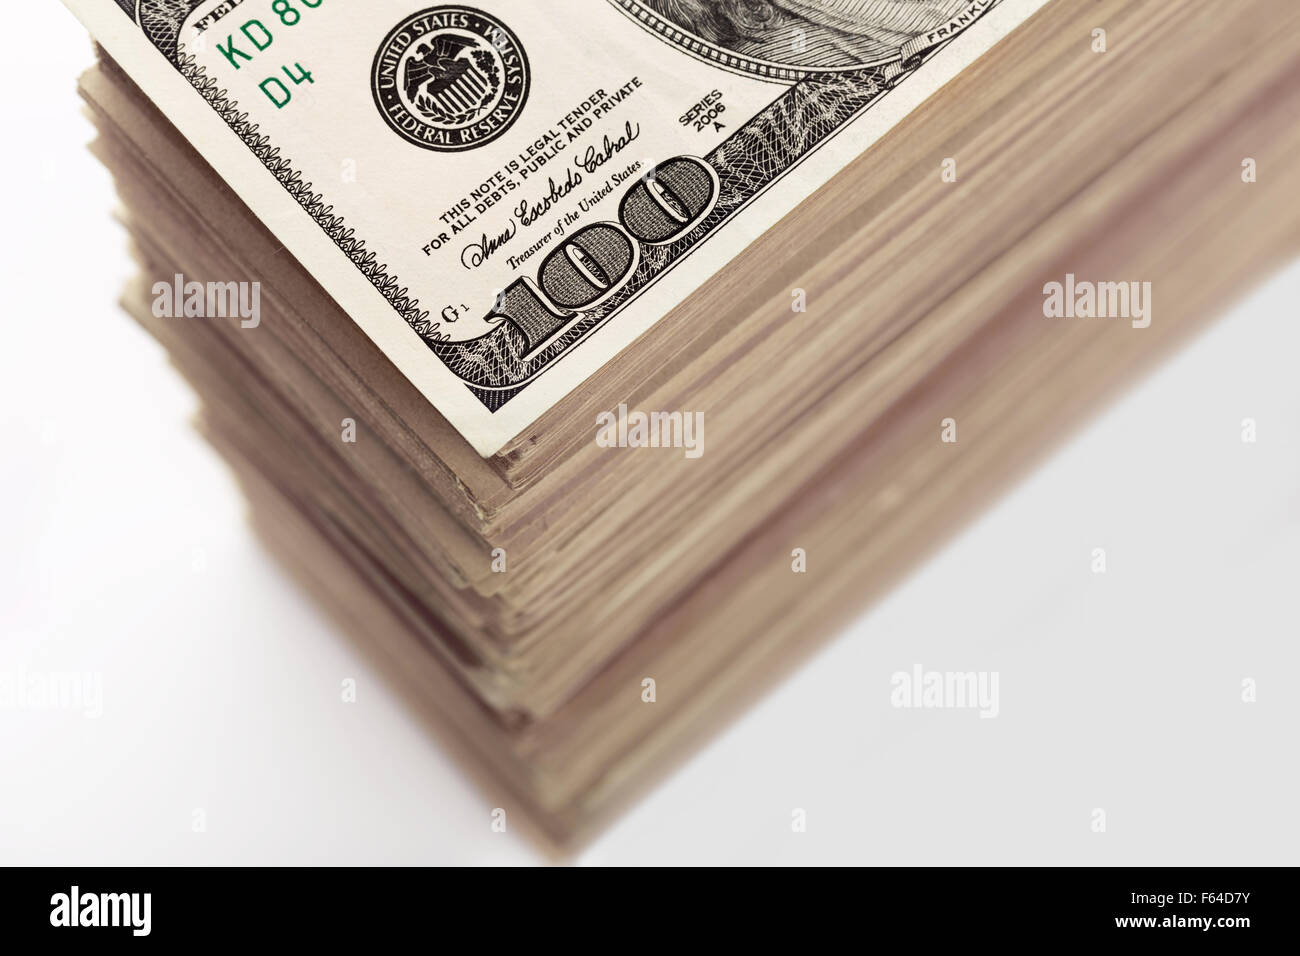 Crop of big stack of dollar banknotes closeup - Stock Image